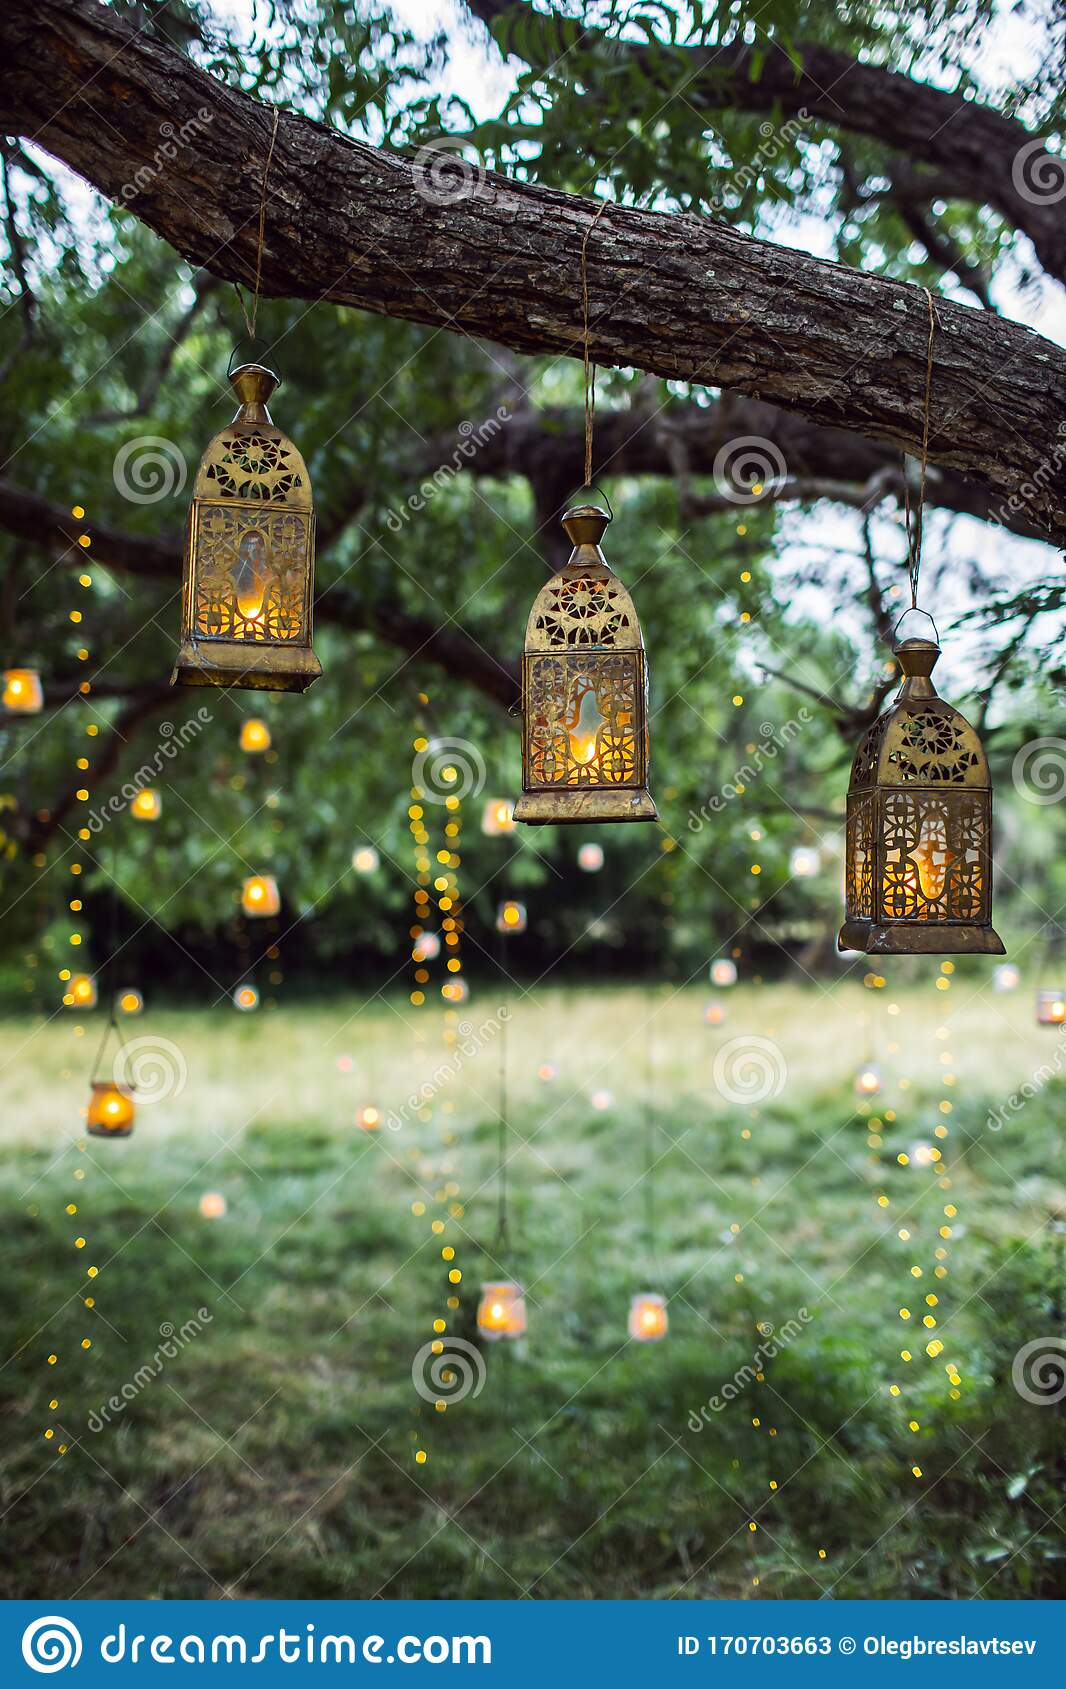 Evening Wedding Ceremony With A Lot Of Vintage Lanterns Lamps Candles Stock Image Image Of Celebration Green 170703663